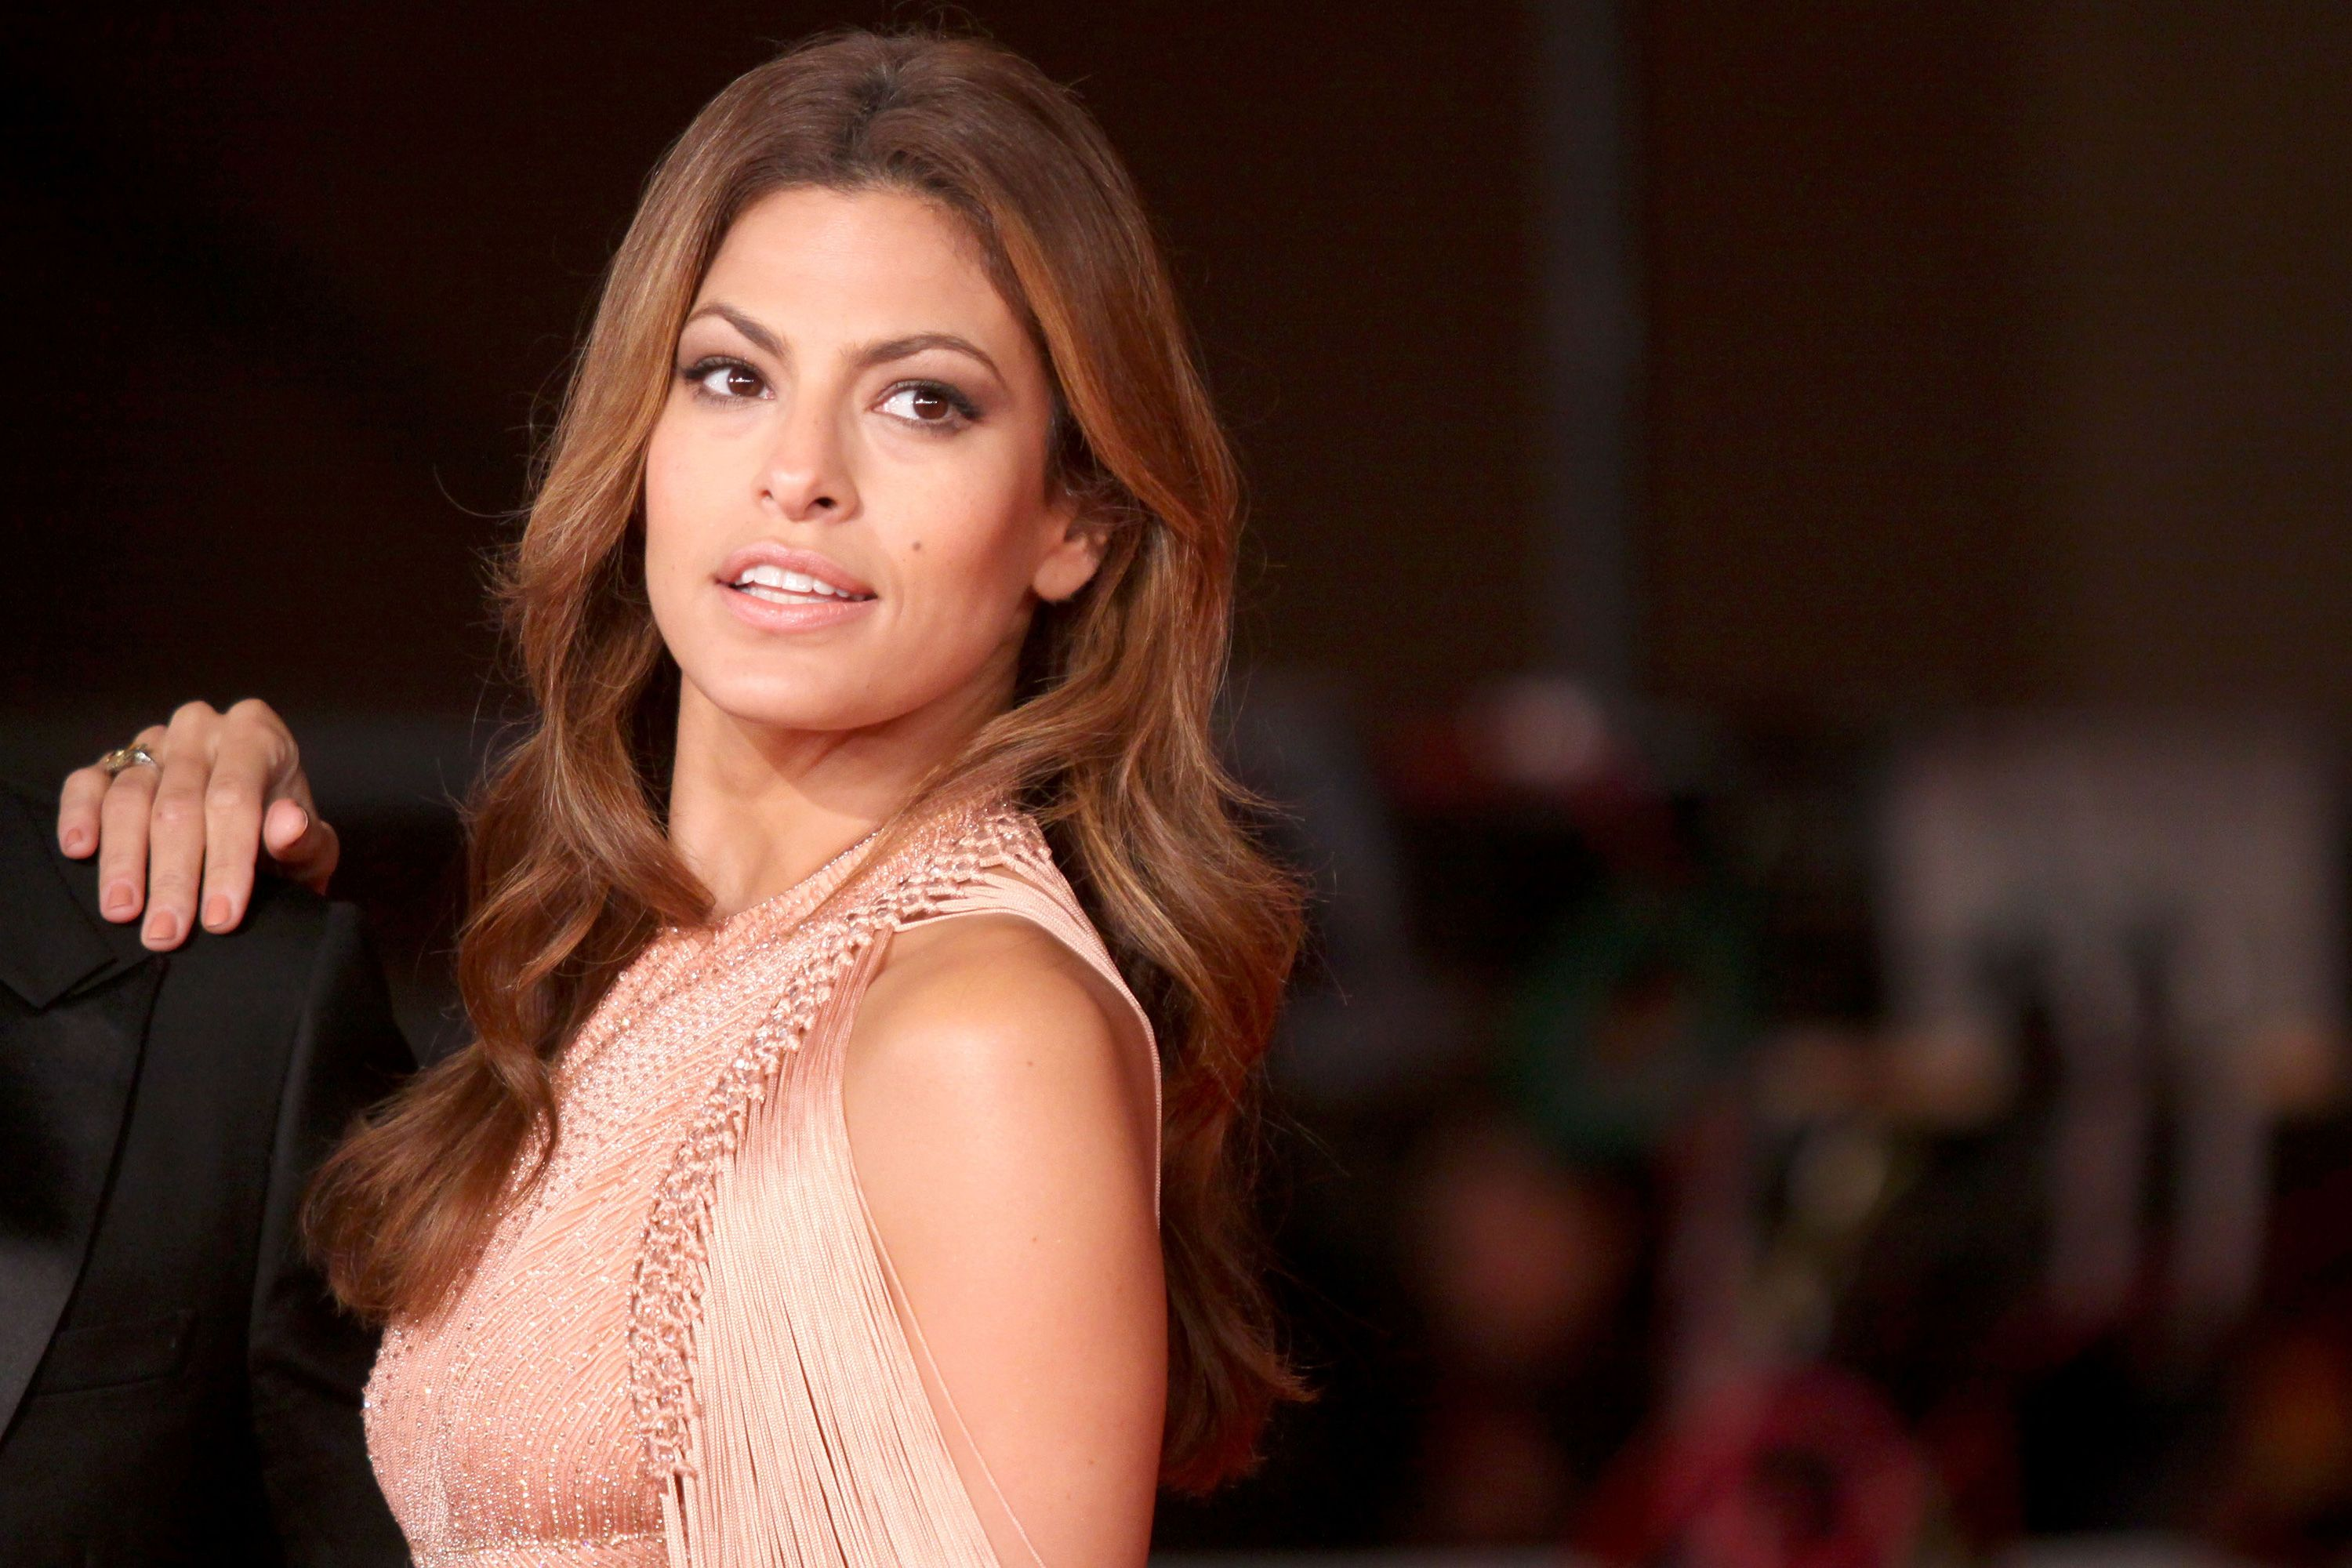 Eva Mendes reveals short hair for the first time